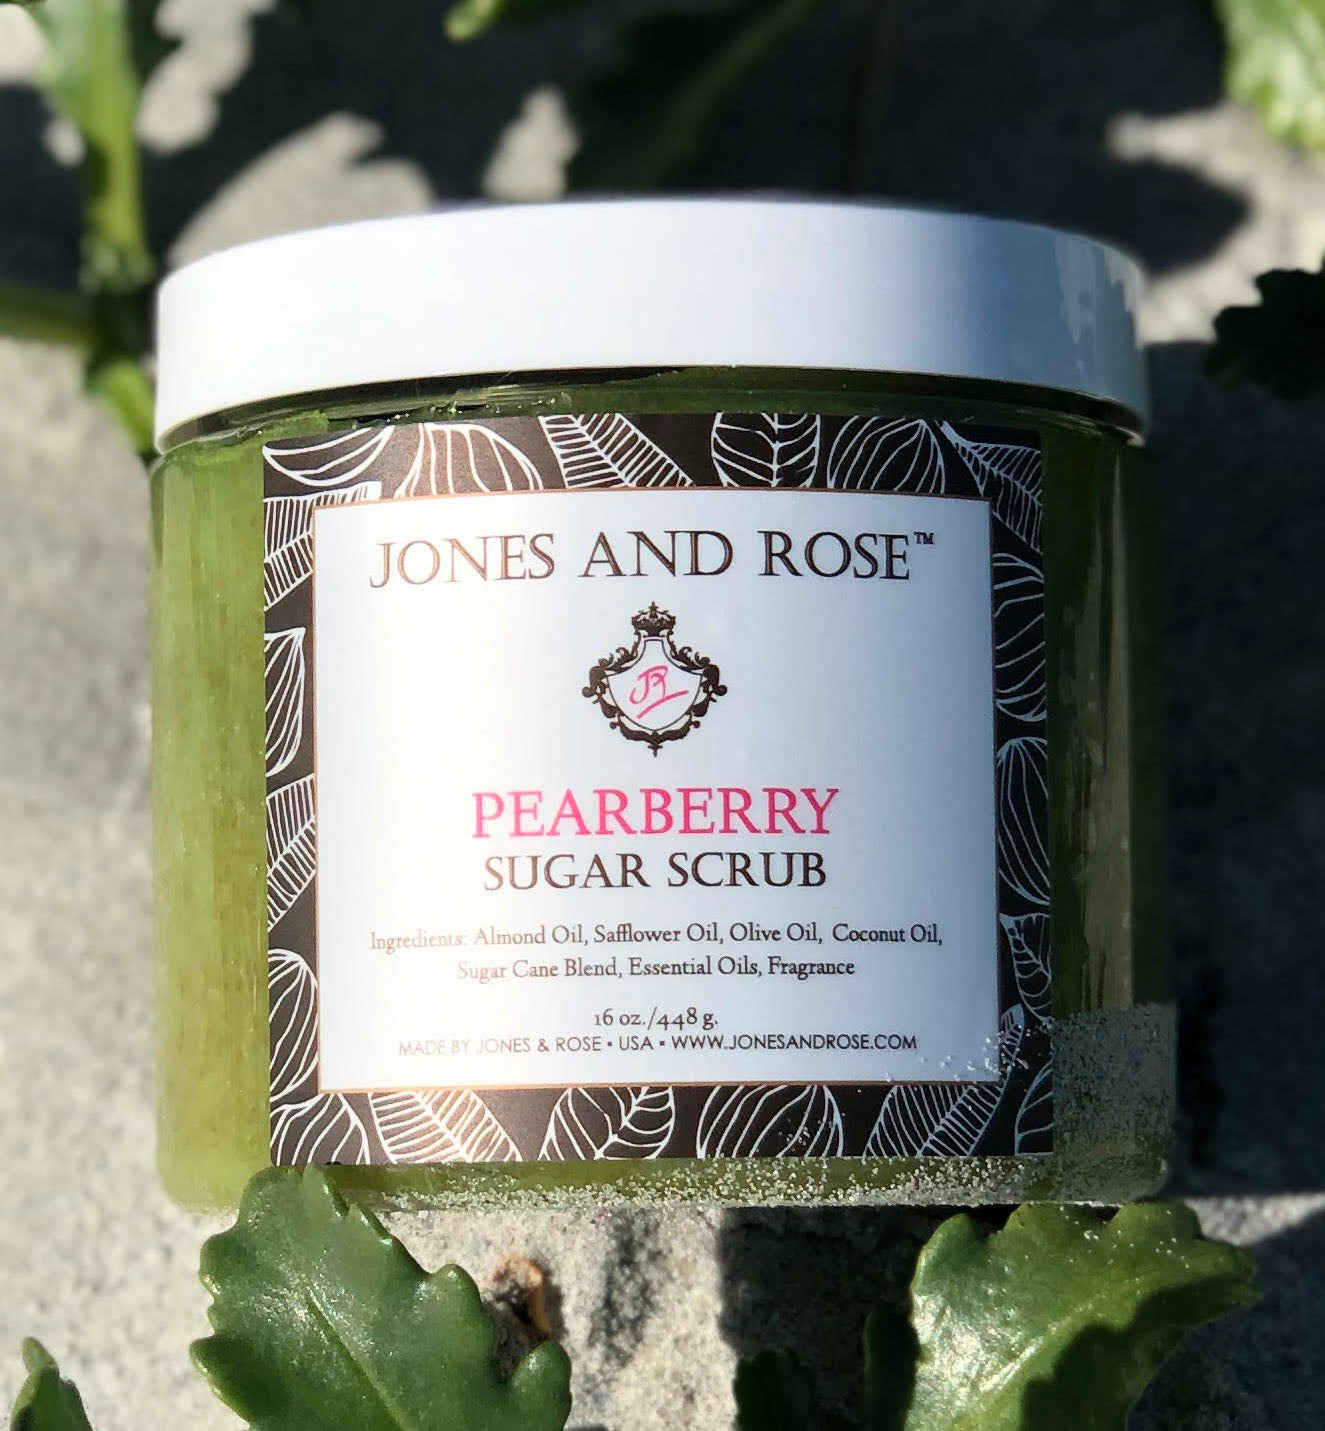 Pearberry Sugar Scrub